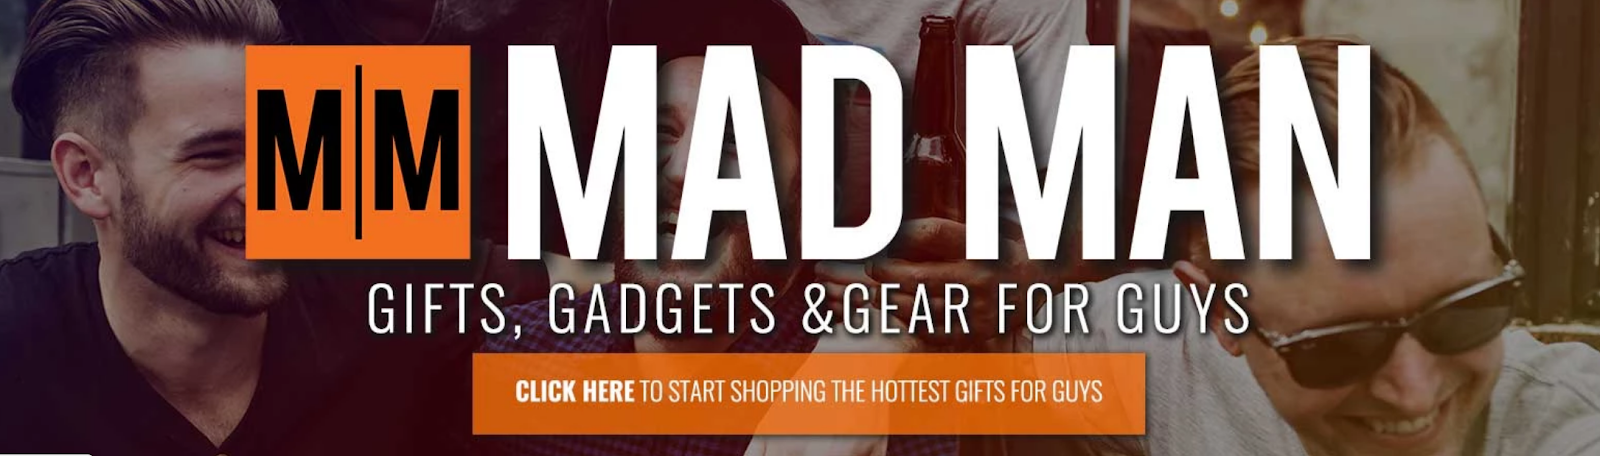 Mad Style - Gifts, Gadgets, Gear for Guys